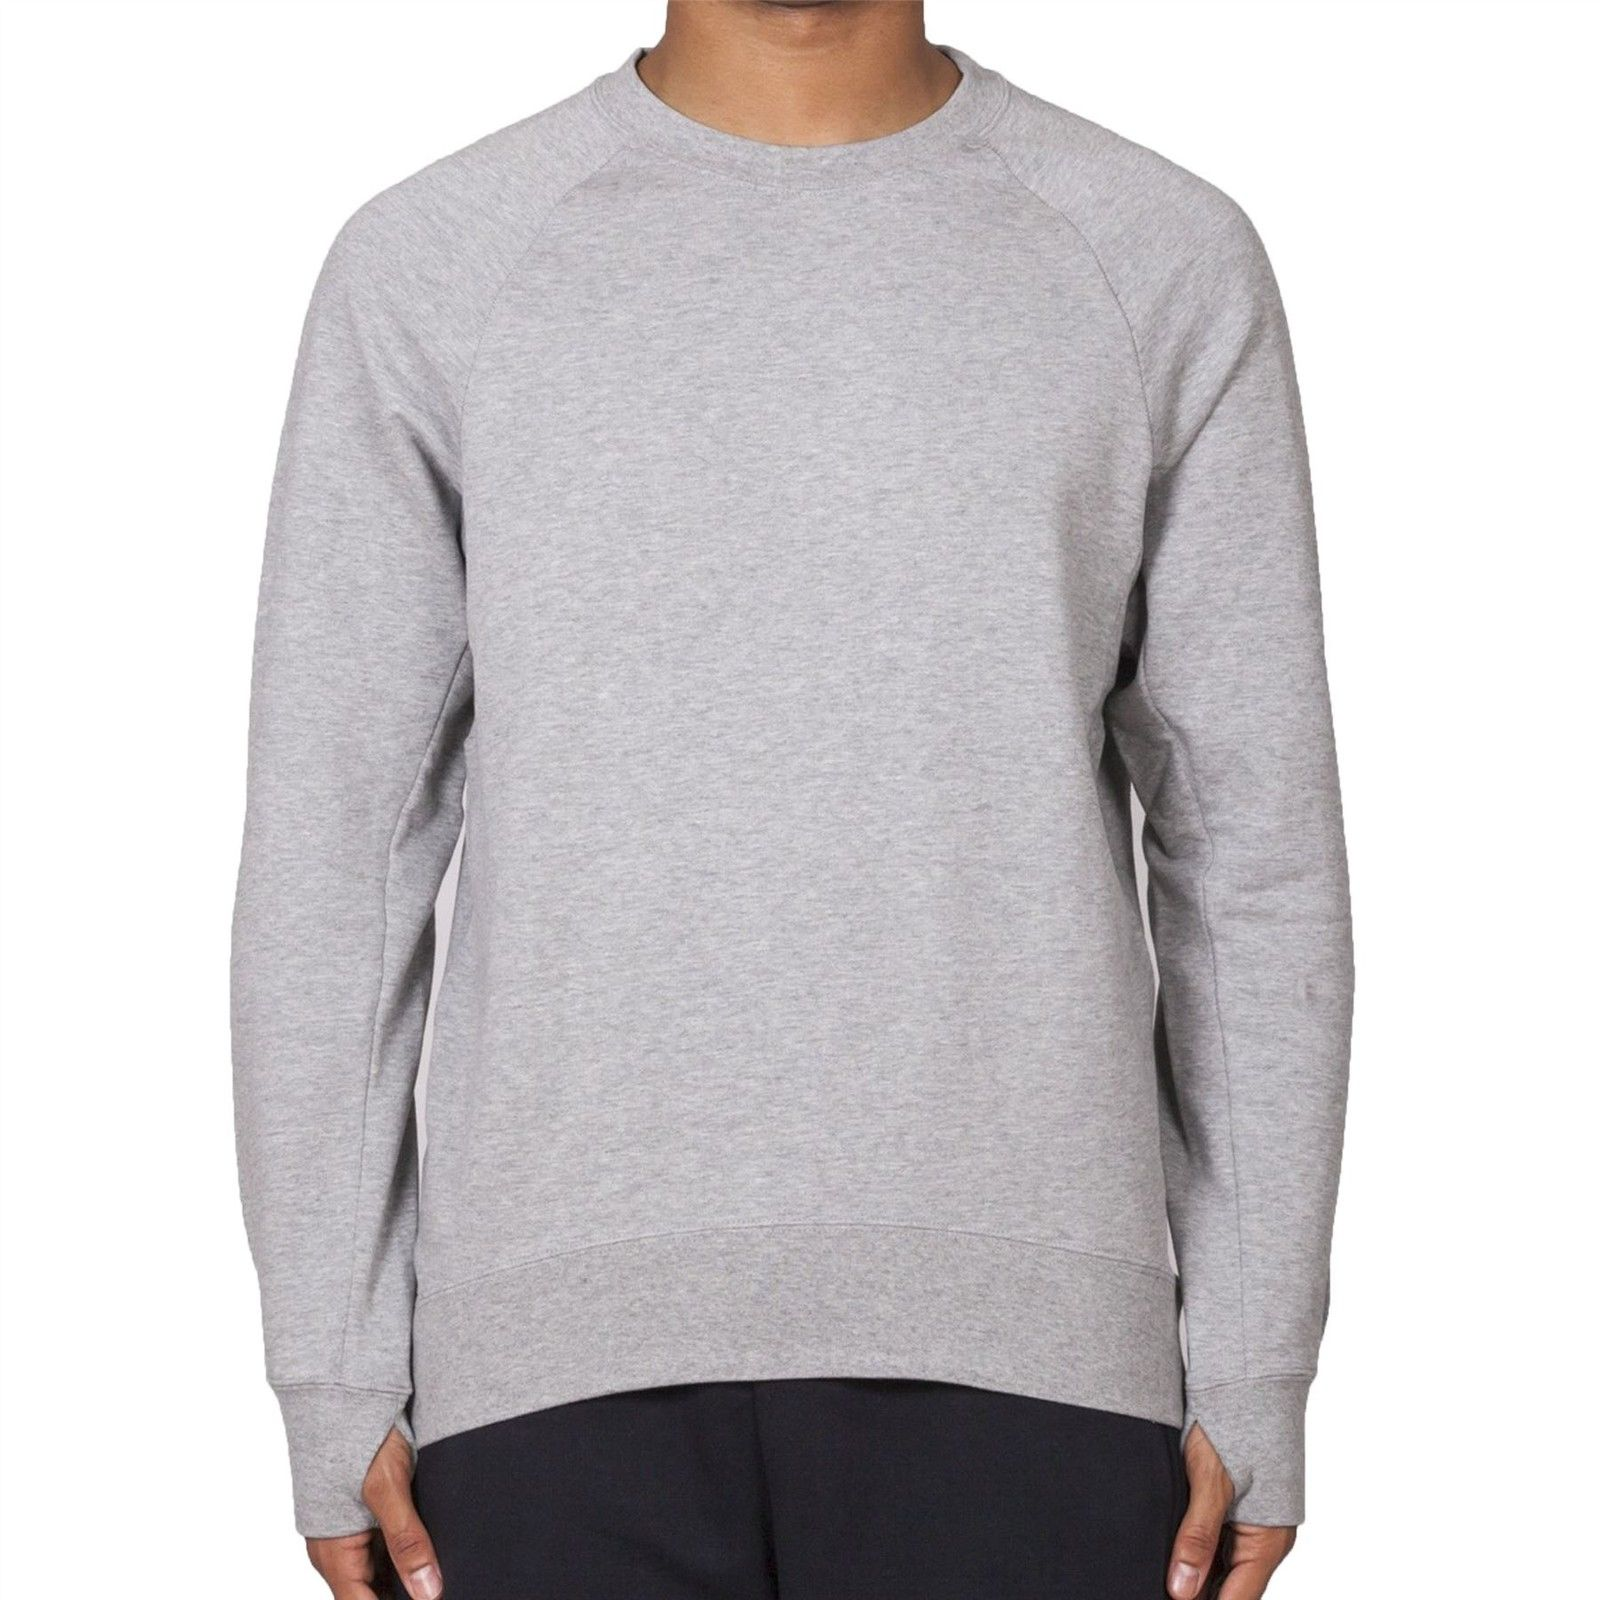 new appearance hot sale online authorized site Details about Nike Men's SB Everett Overlay Long Sleeve Crew Neck Storm  Cuff Grey Sweatshirt